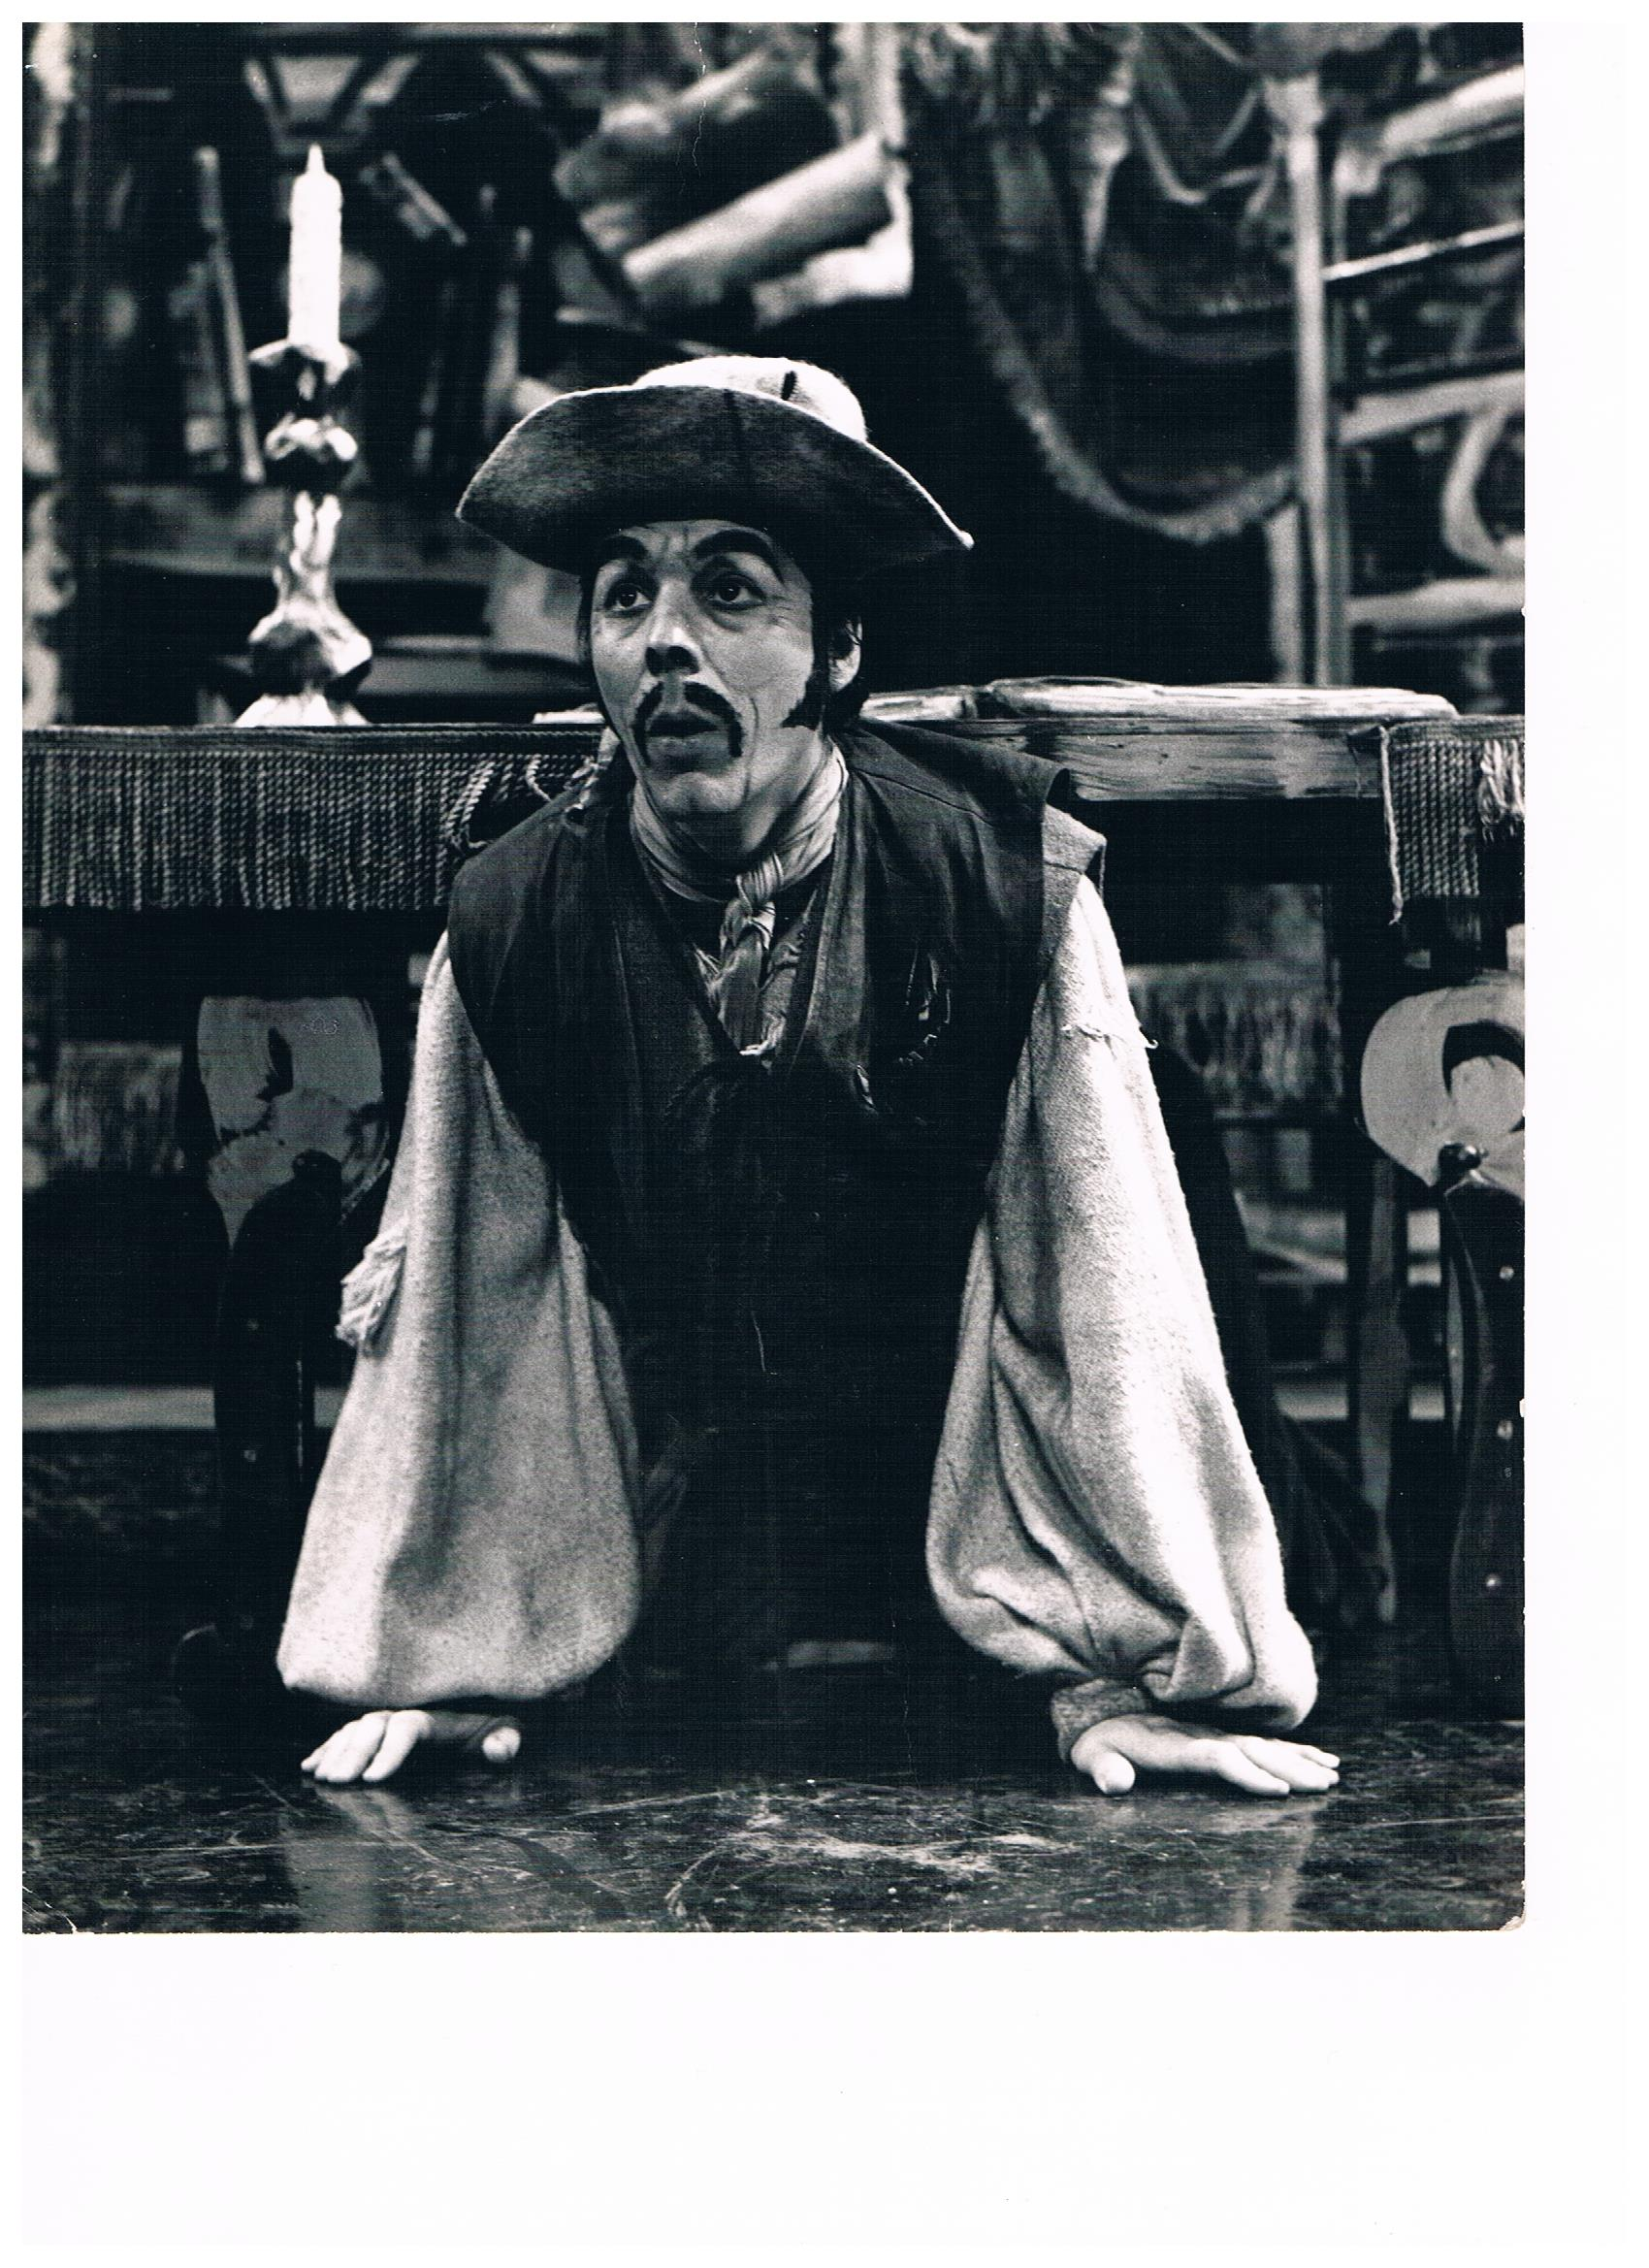 Terry performing as Sancho Panza in the London's Festival Ballet production of Don Quixote in 1972. This was a media shot for the London Coliseum season